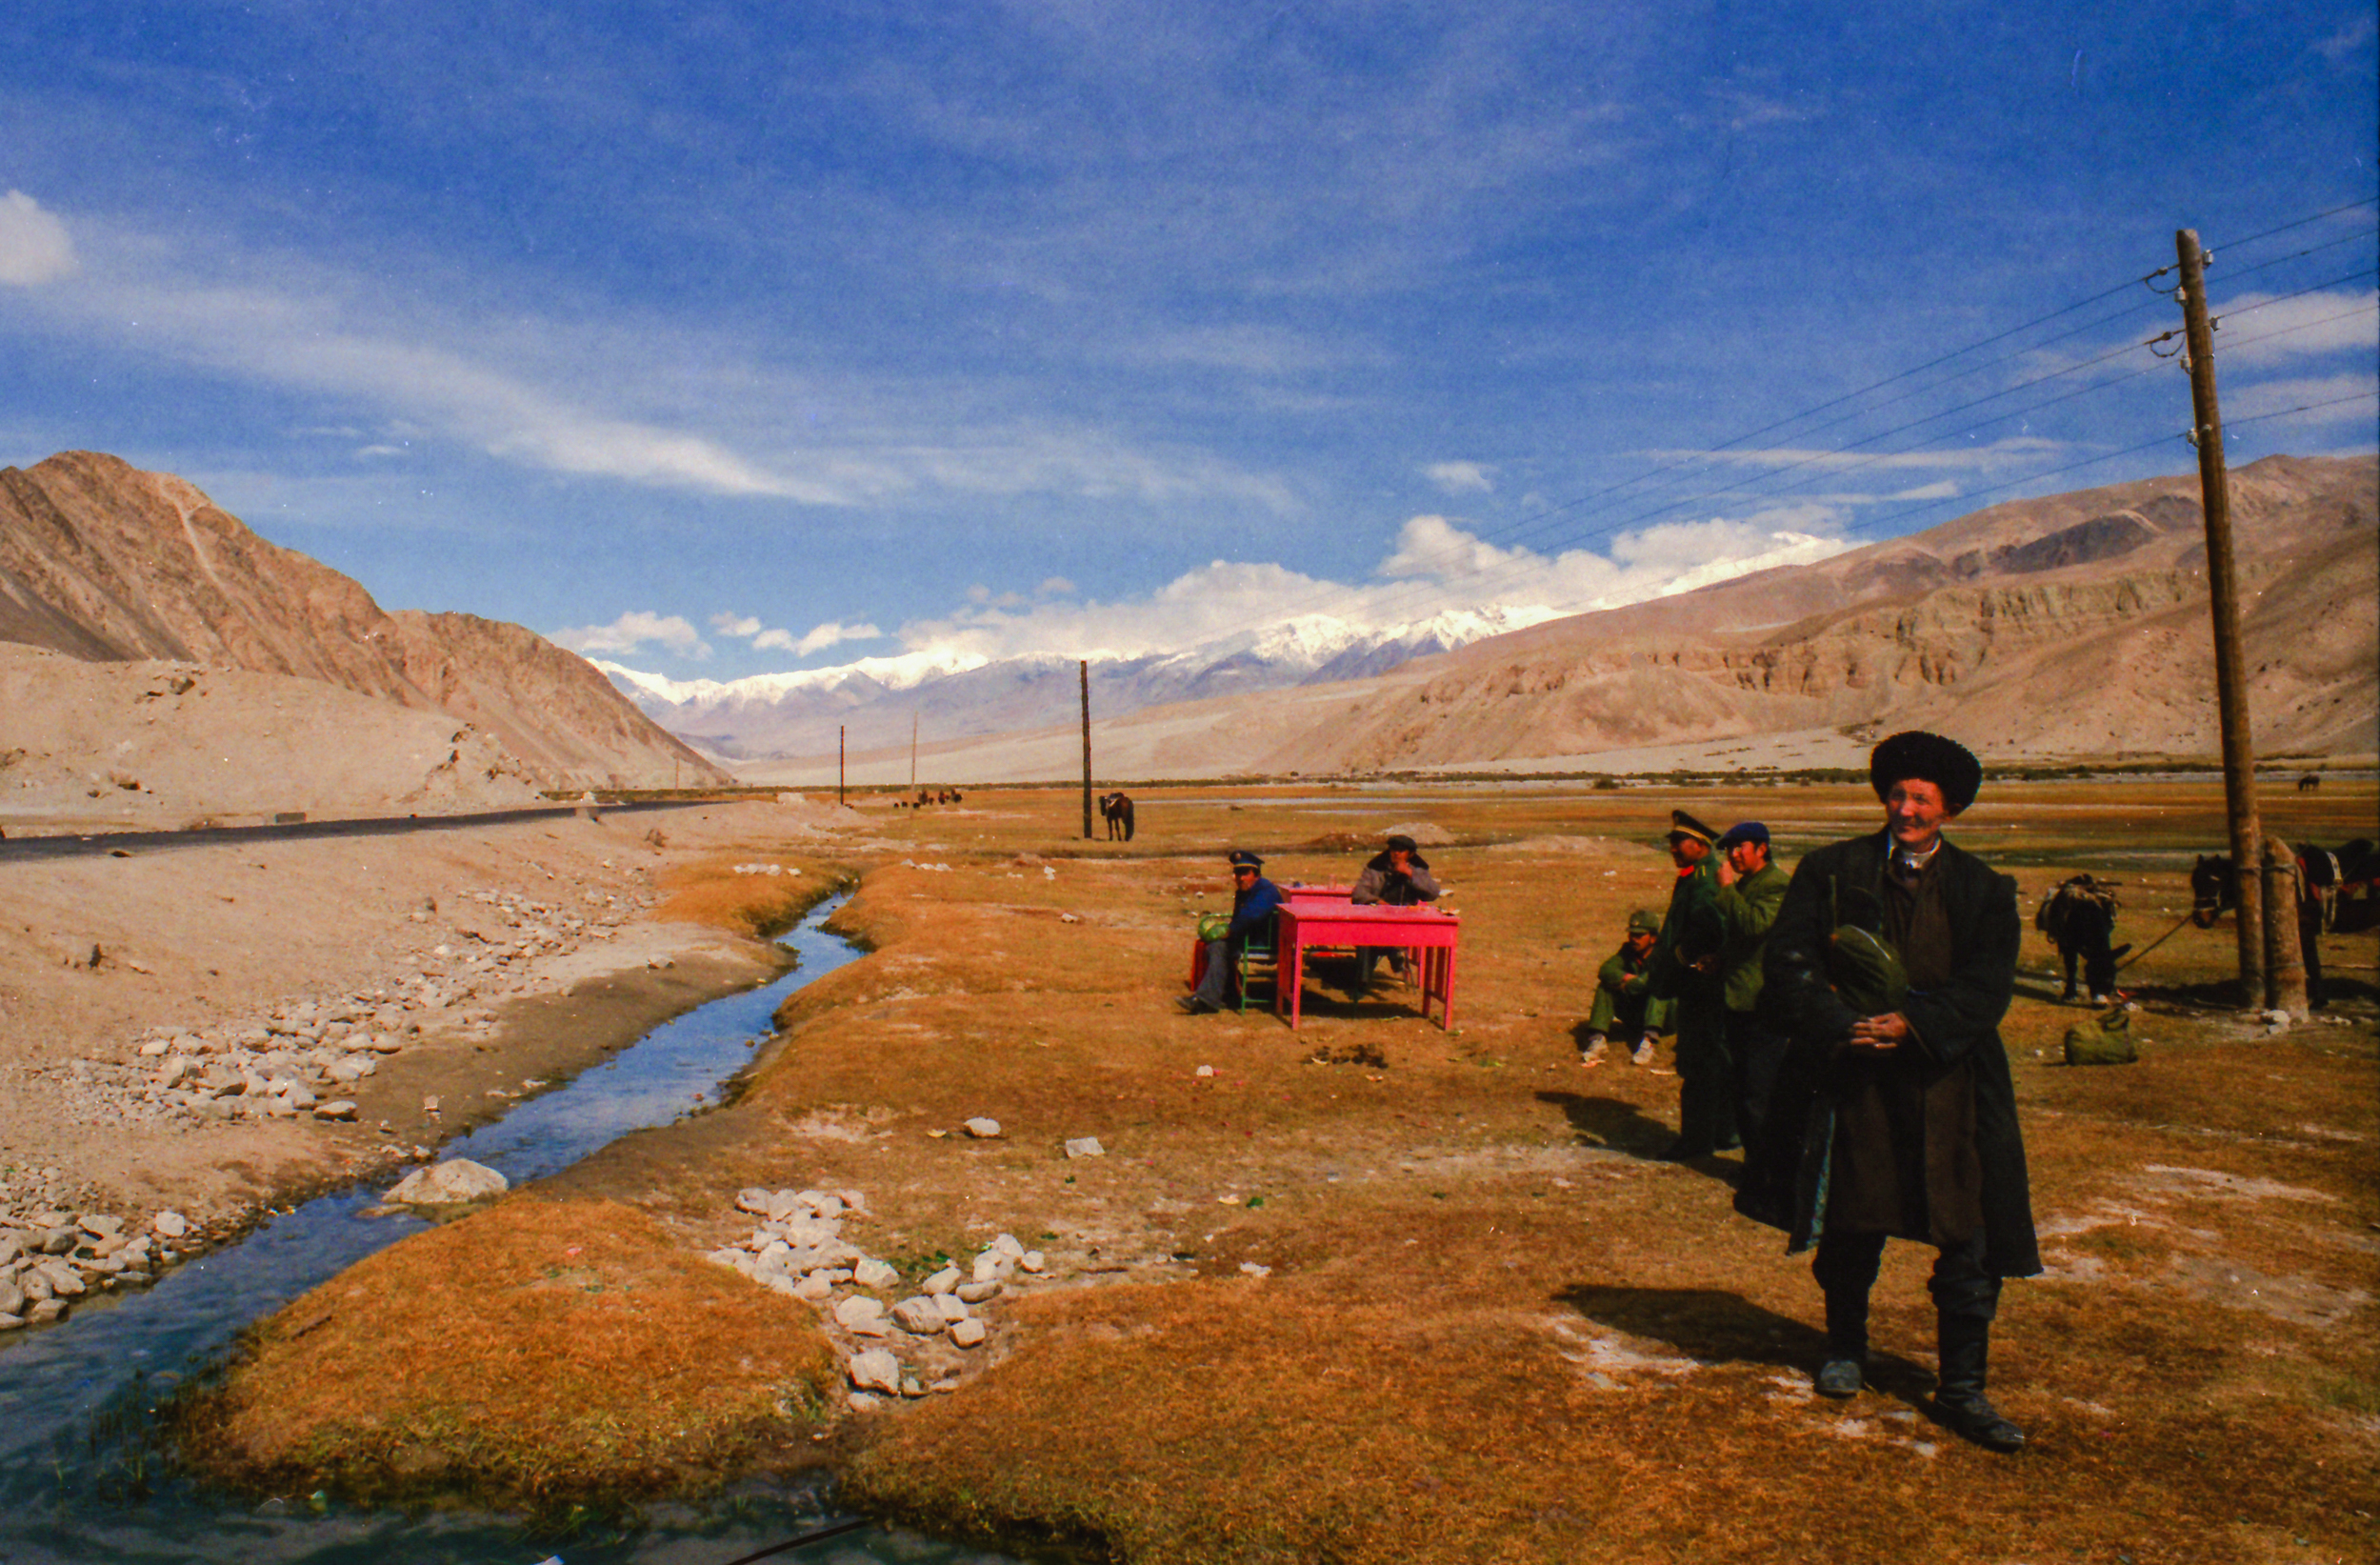 On the road from Pakistan near the Khunjerab Pass, on the Chinese side